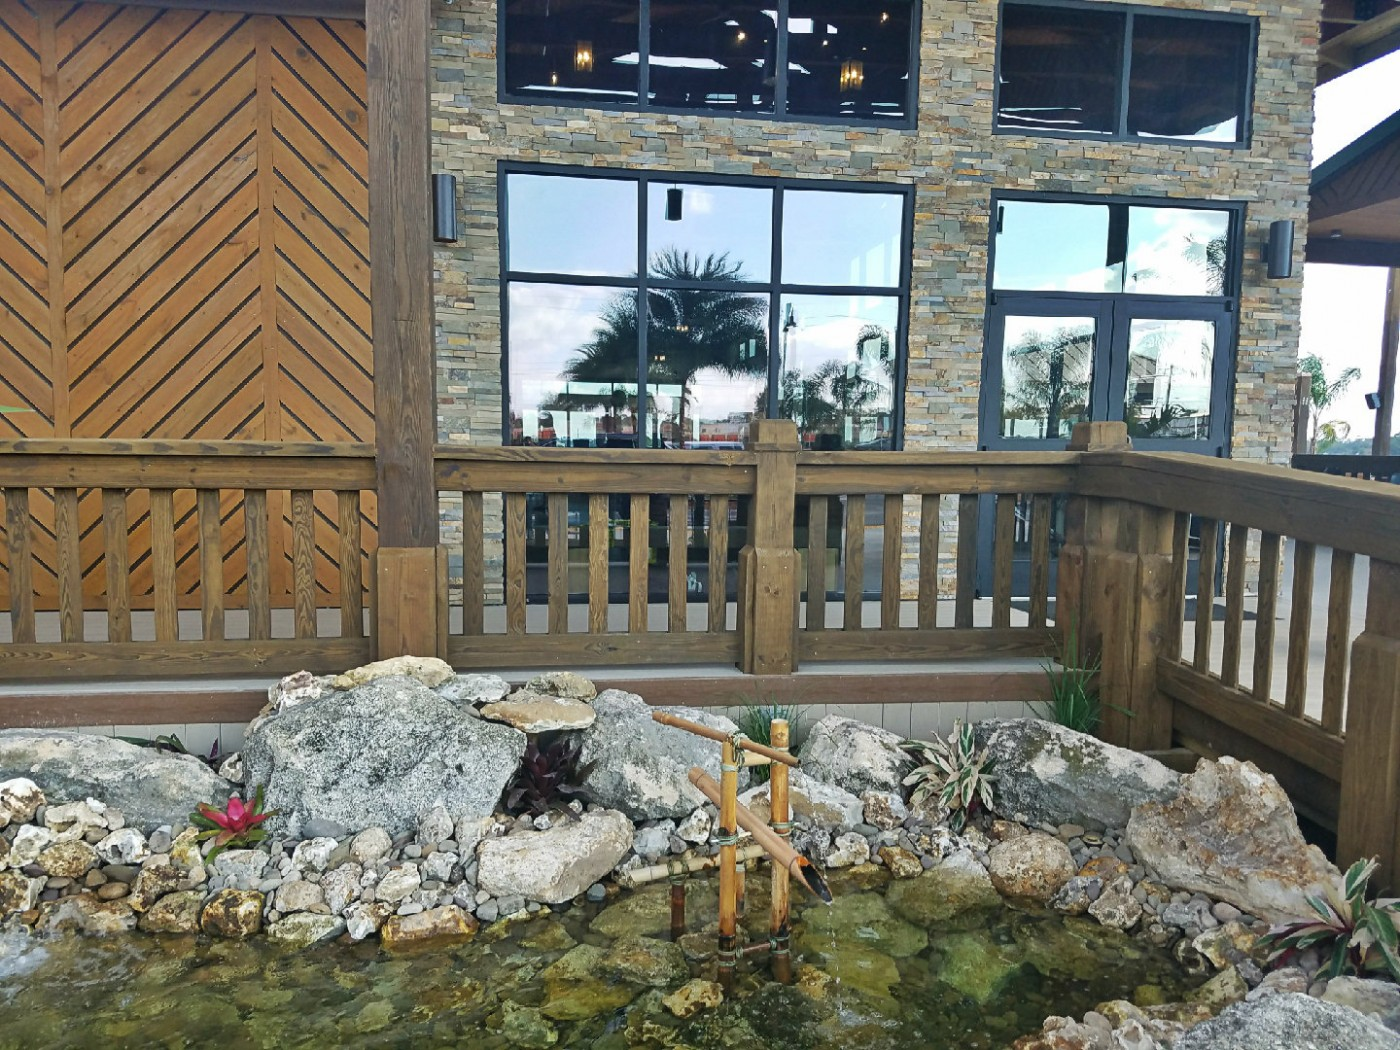 Grills Lakeside Restaurant Seafood Orlando Waterfront Best View Florida Near Disney Downtown